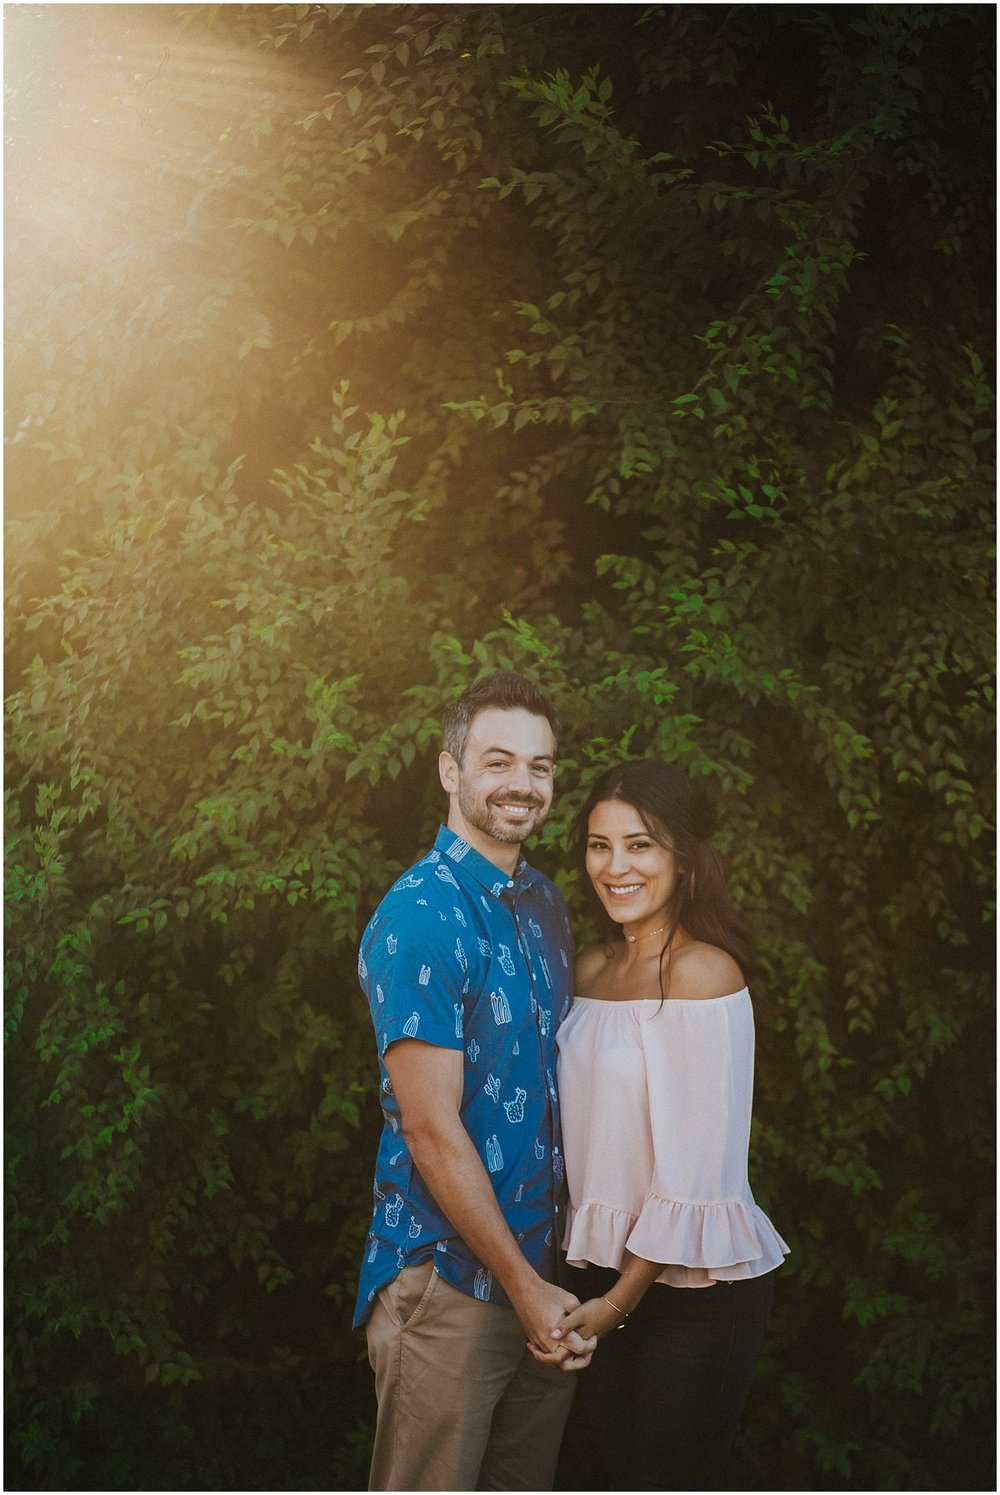 I met Jade and Steve on an early summer morning on Bent Street in Taos, New Mexico. Jade and Steve dressed in the cutest engagement photo outfits I have ever seen. His blue cactus shirt perfectly complimented her blush pink blouse. The beautiful morning light in Taos is unlike any light source I've ever worked with. Their entire engagement photo session was a dream to photograph. We explored throughout Bent Street, checking out the John Dunn Shops, and a little beyond the Taos Plaza, captured some gorgeous New Mexico engagement photos, and then headed to Overland Sheepskin Co. for part two of this rad engagement photo shoot. | Jasper K Photography | New Mexico Engagement Photographer